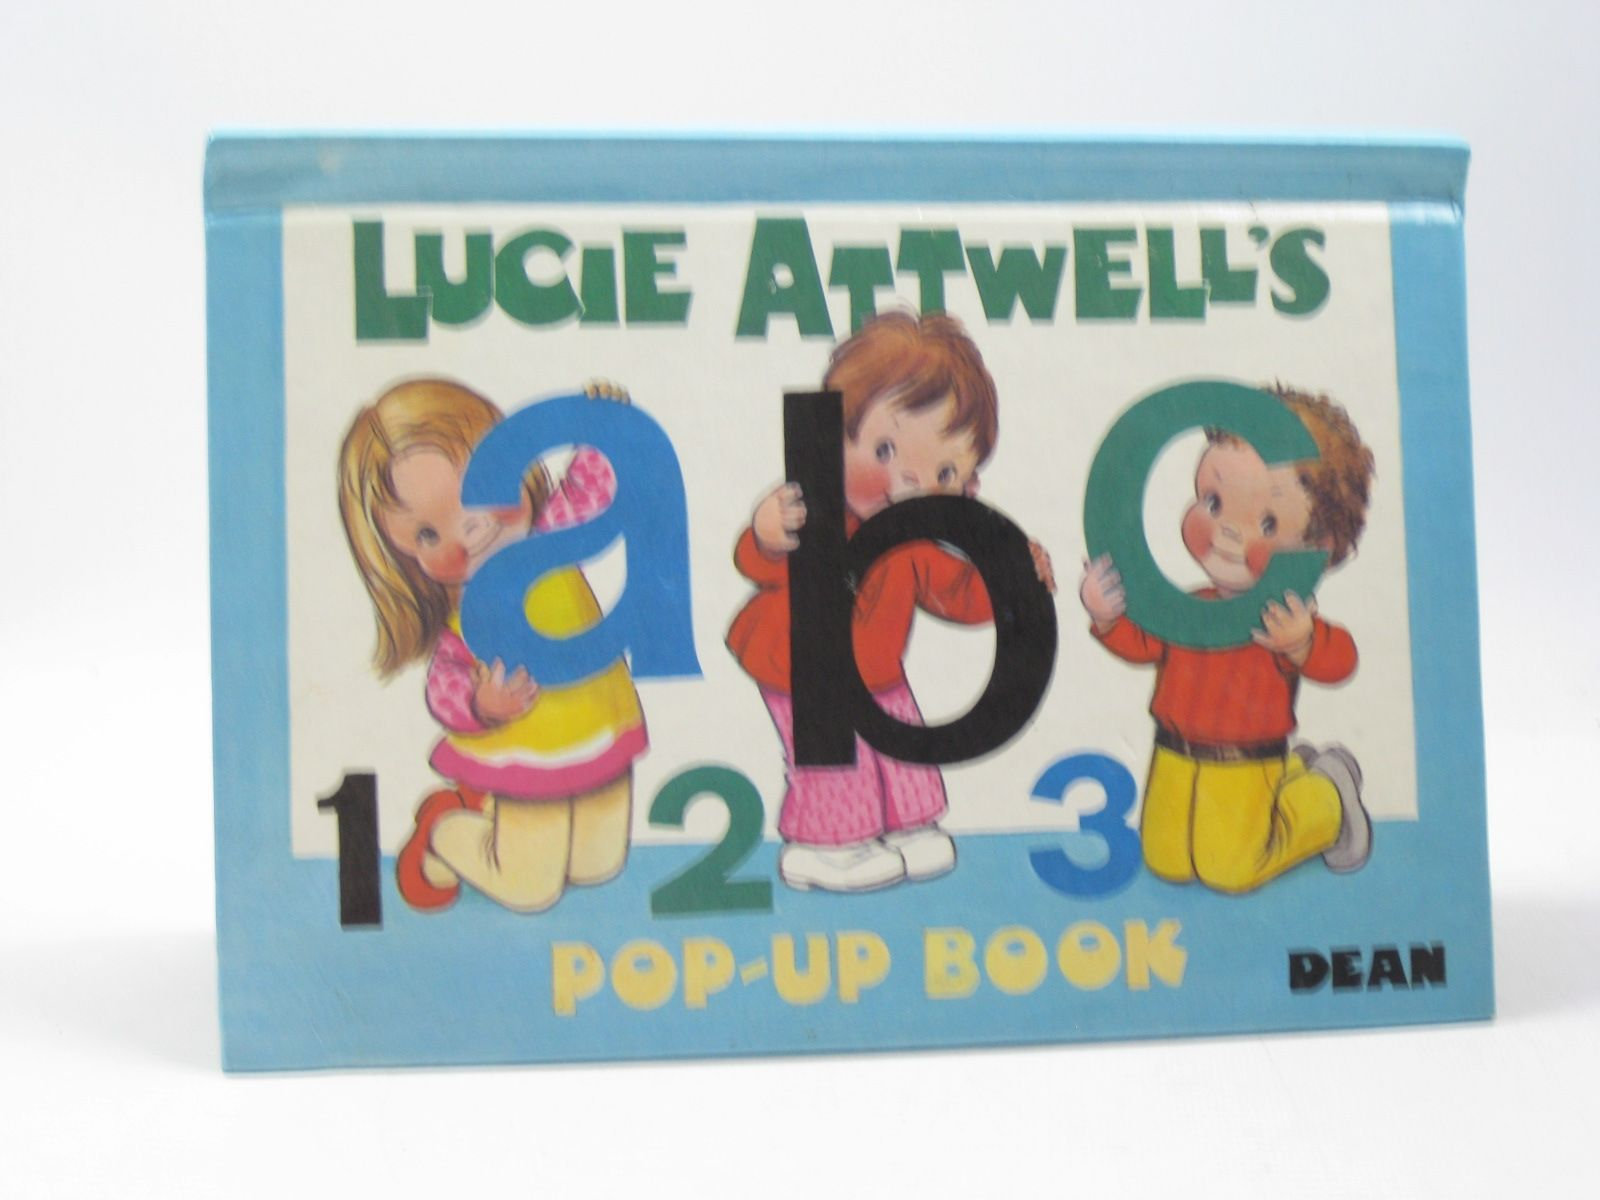 Photo of LUCIE ATTWELL'S ABC 123 POP-UP BOOK